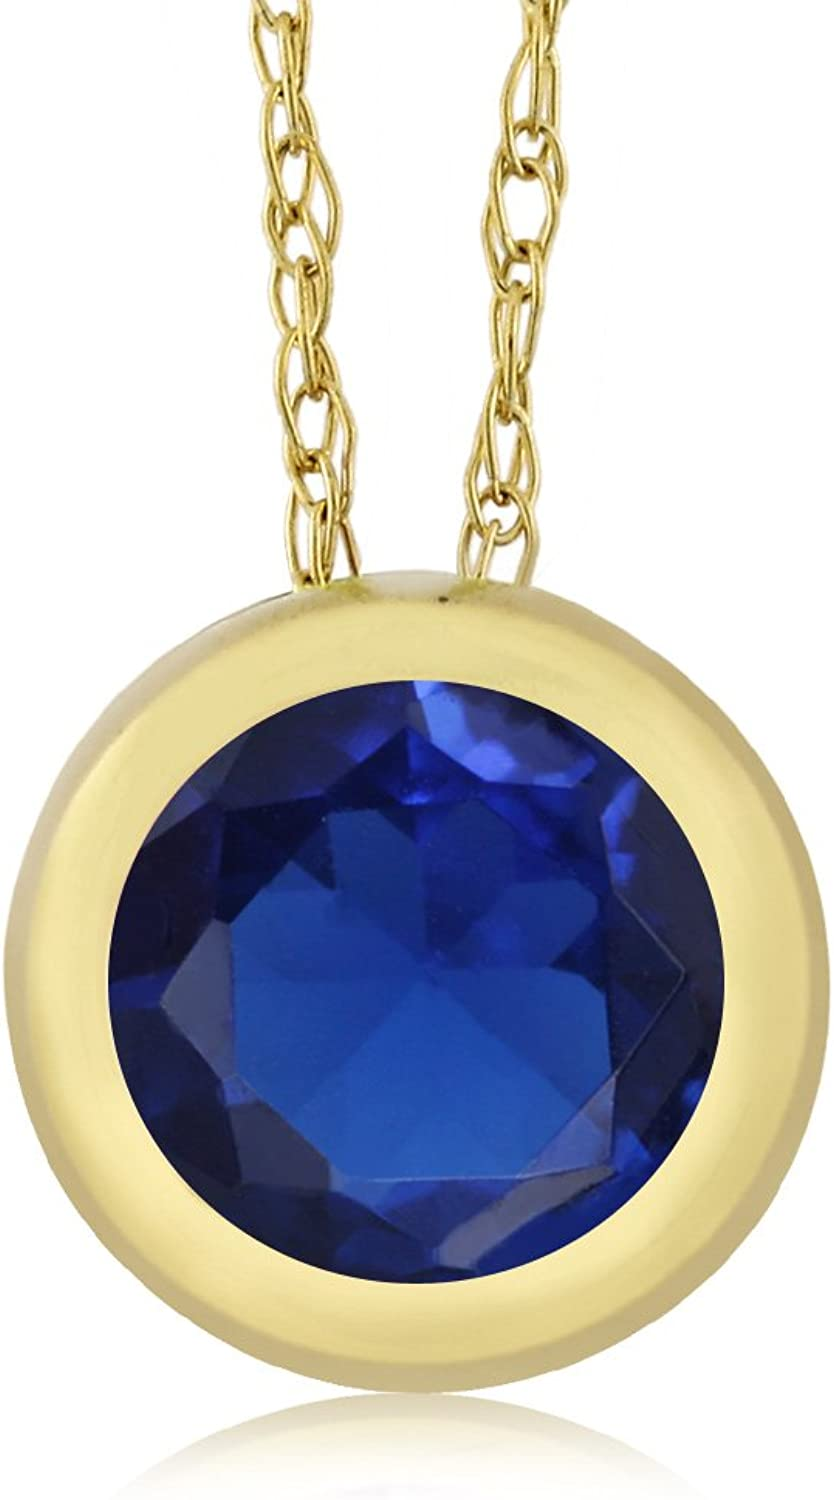 0.85 Ct Round bluee Zirconia 14K Yellow gold Pendant With Chain